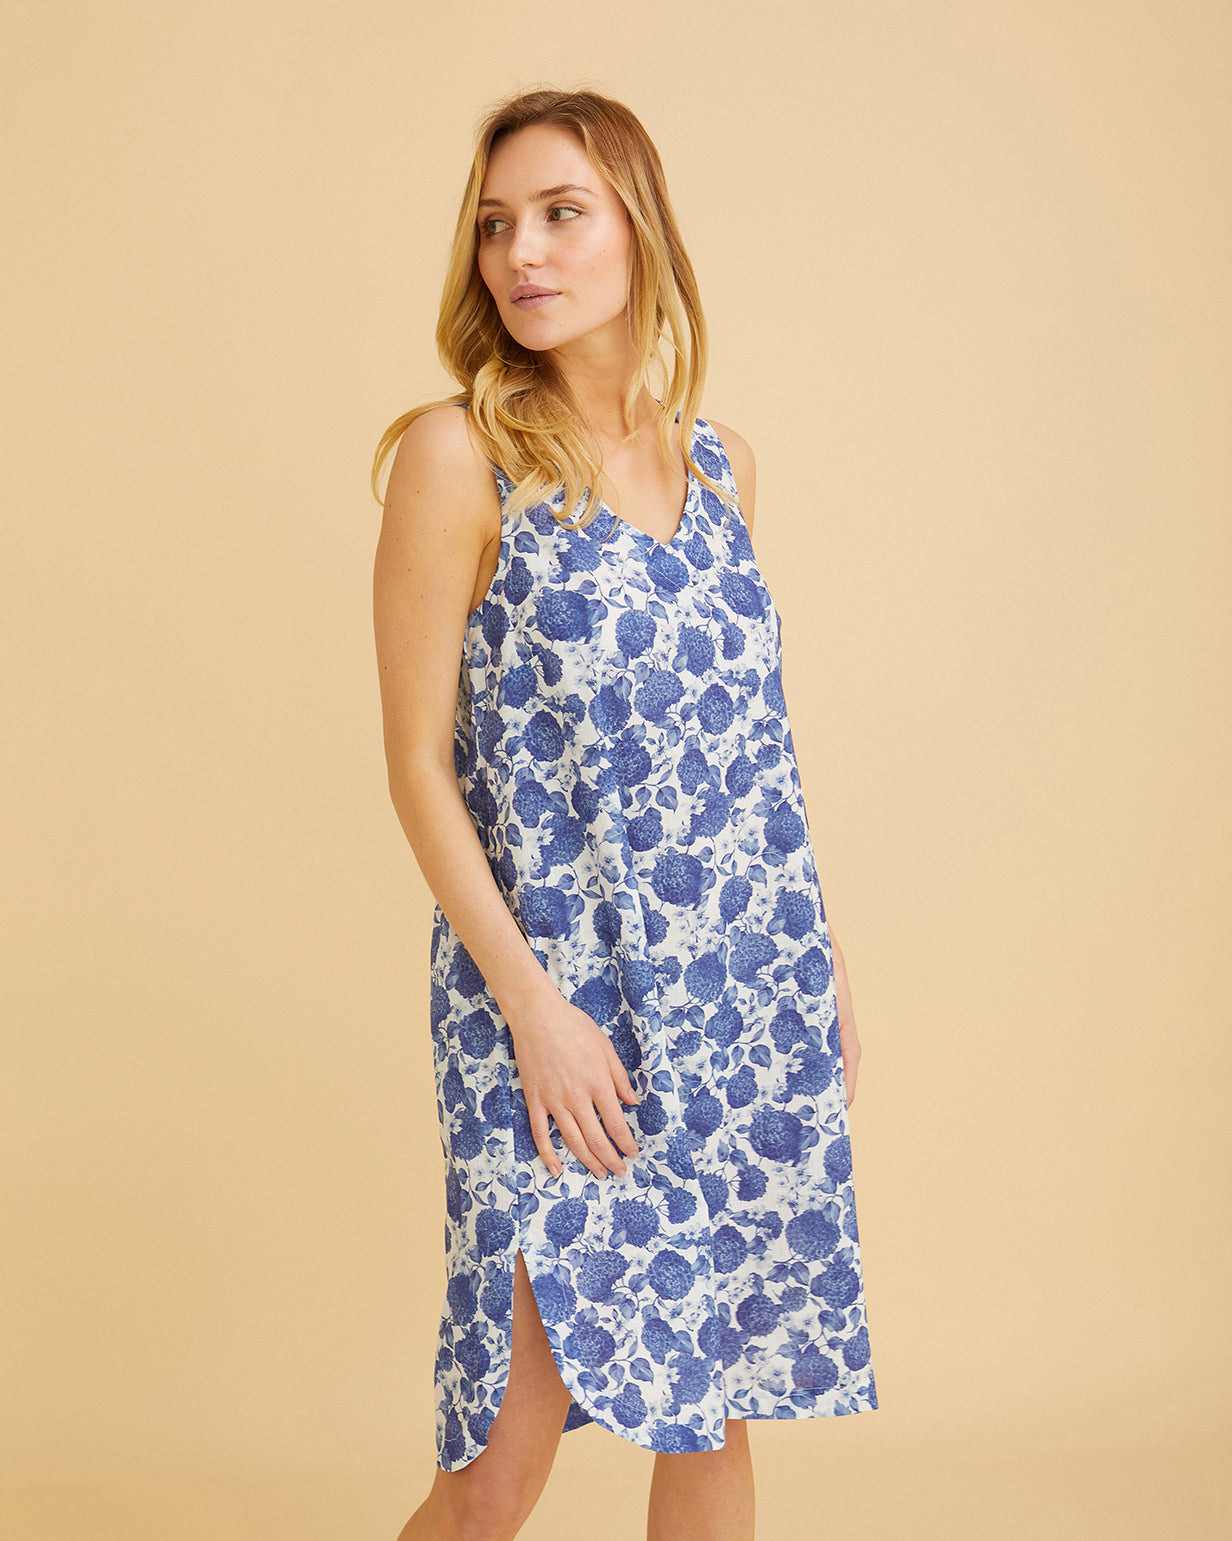 Women's Annabel Cotton Nightdress – Yves Blue Floral